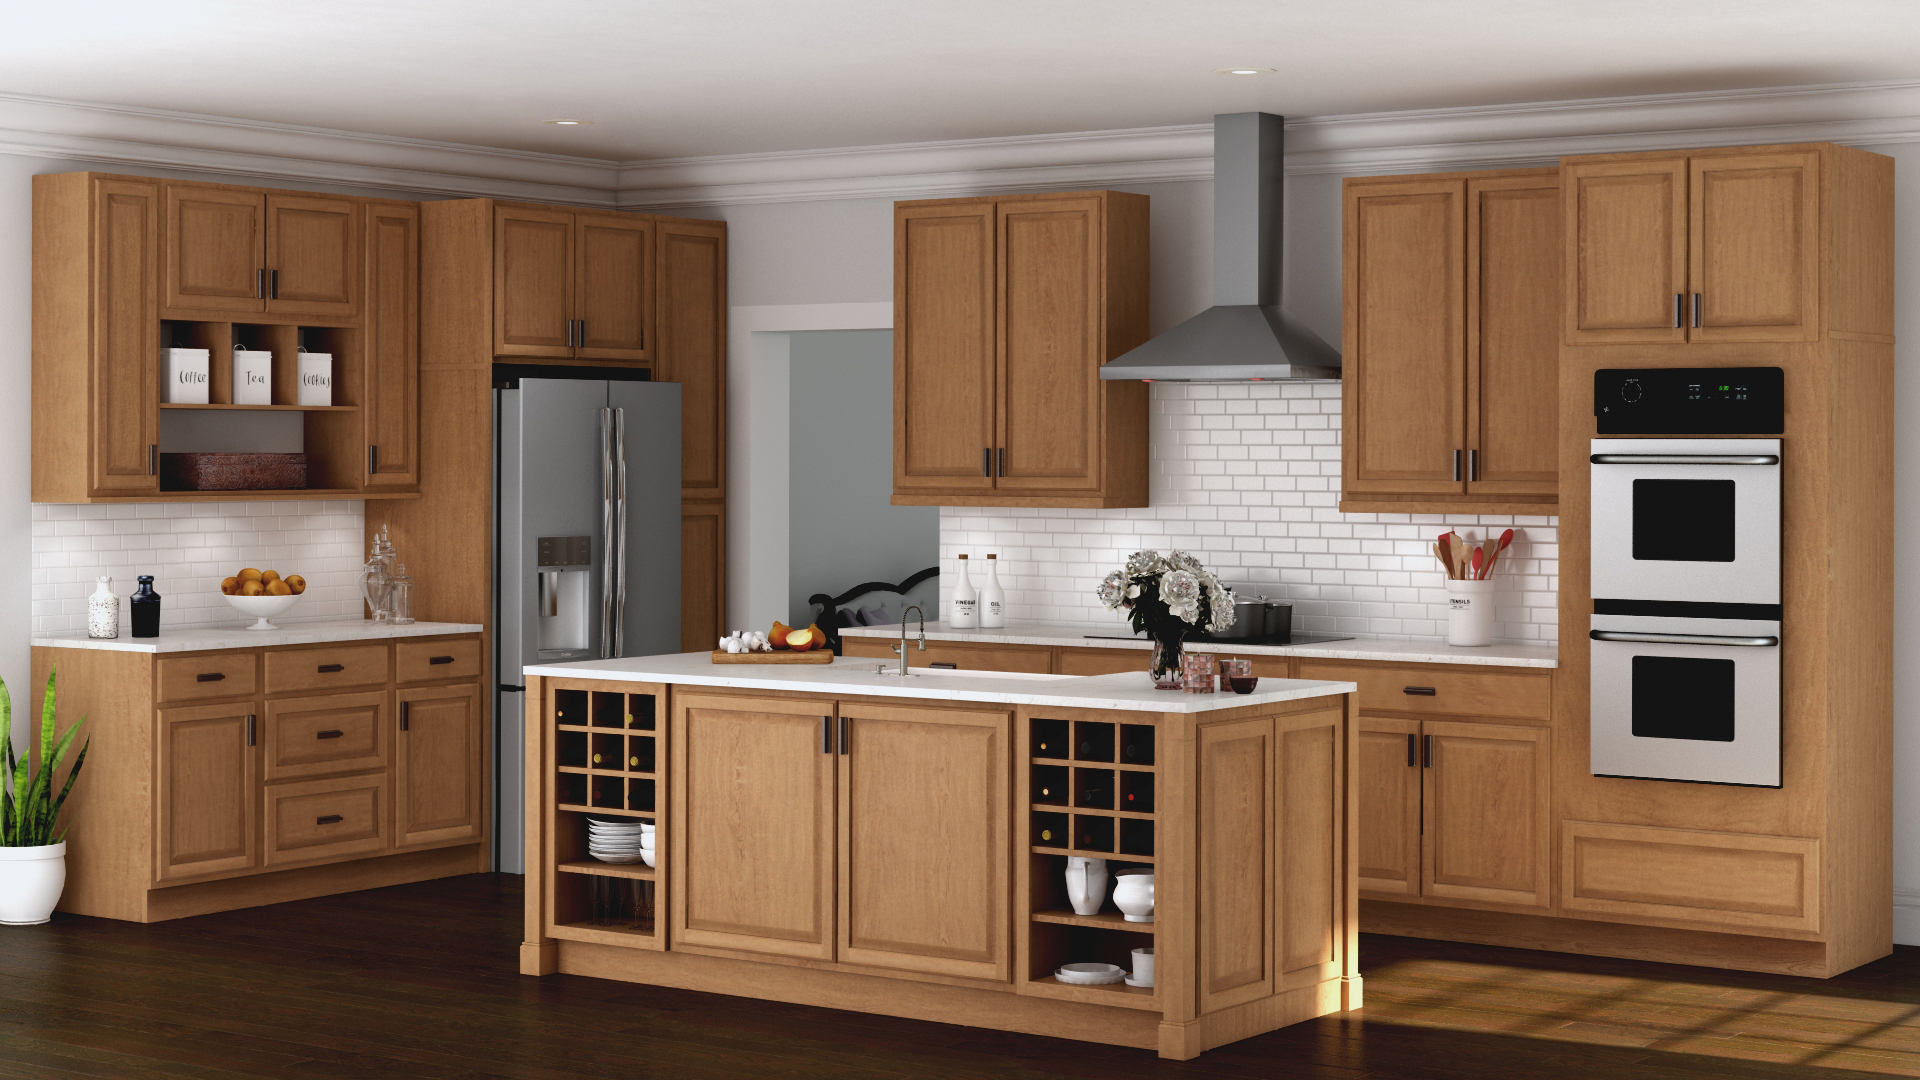 Kitchen Cabinets For Small Kitchens: Hampton Wall Kitchen Cabinets In Medium Oak